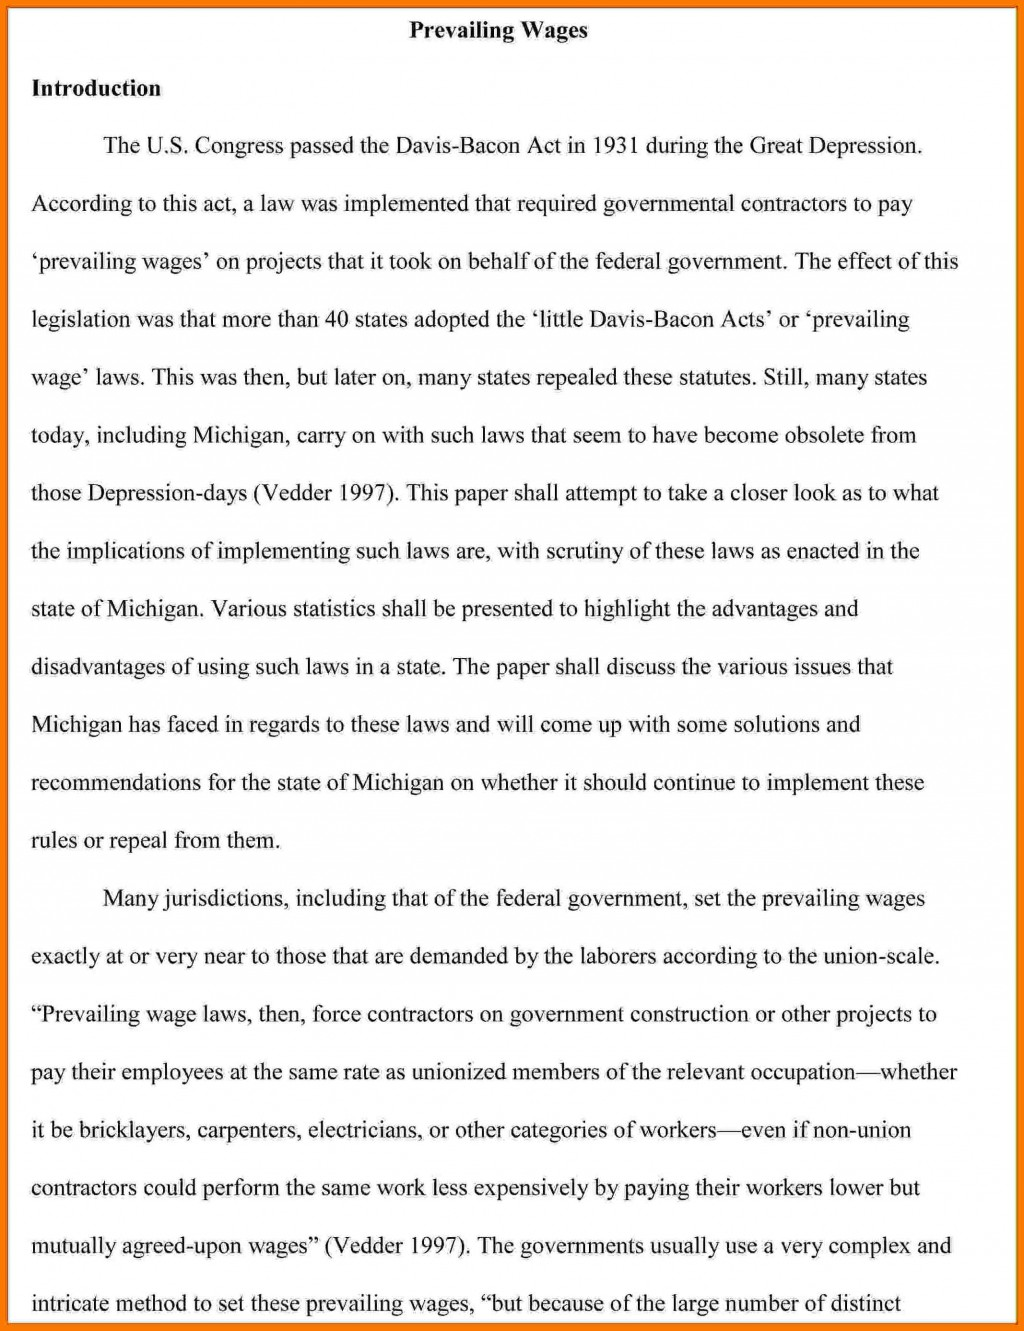 003 Introduction To Research Paper Example Collection Of Solutions Apa Fearsome A How Write An Pdf Paragraph For Mla Large